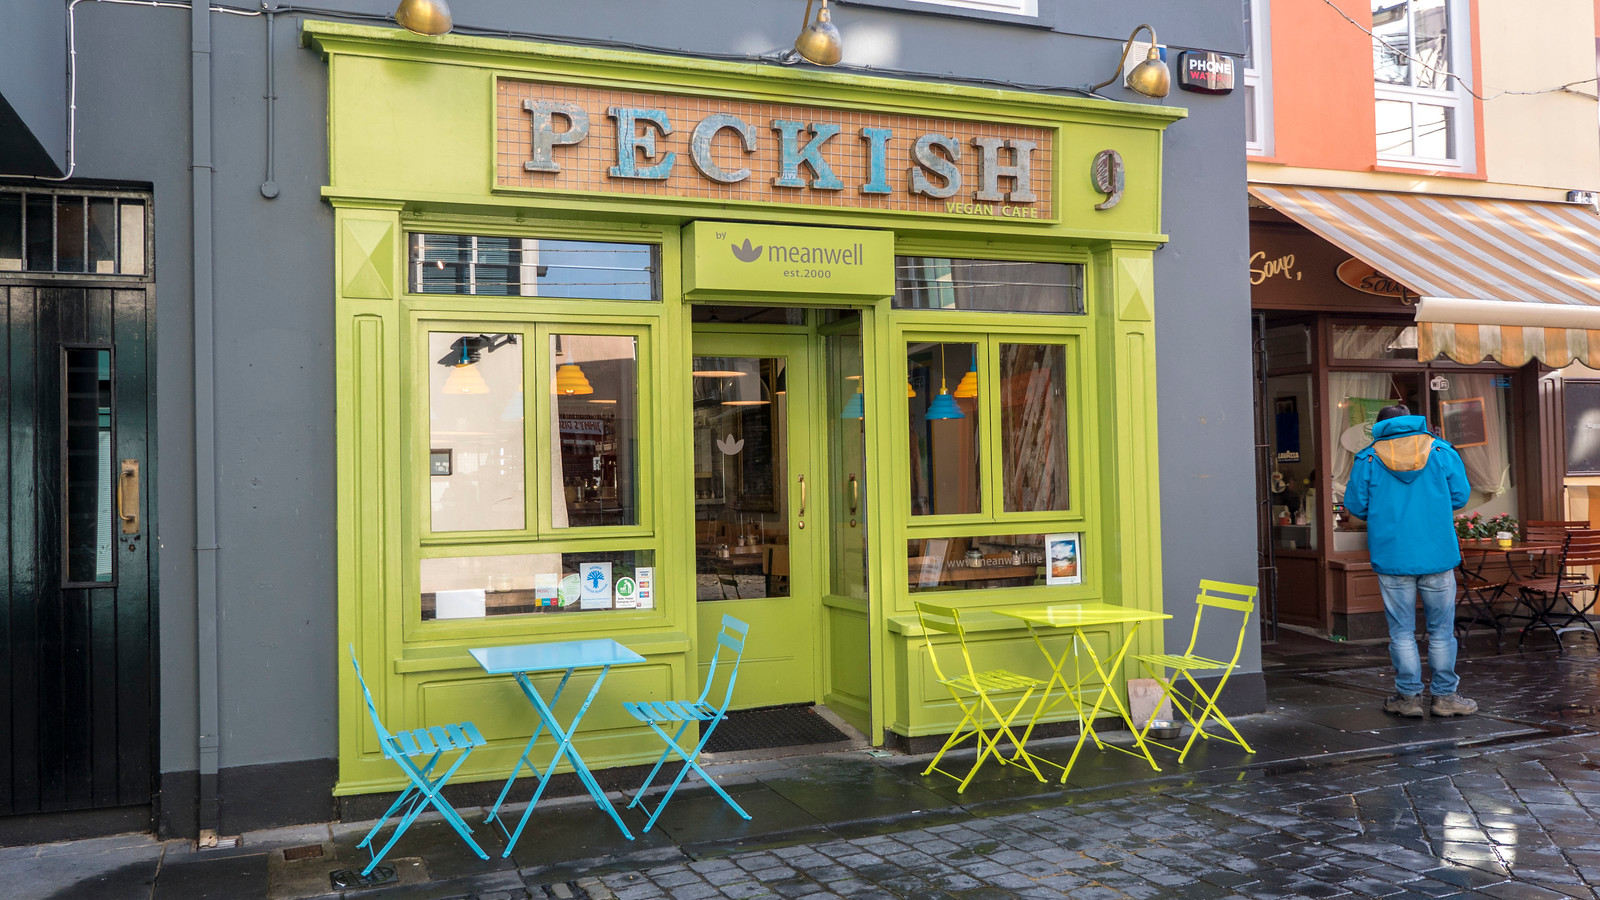 Peckish Vegan Cafe: Ennis Restaurant You Must Visit